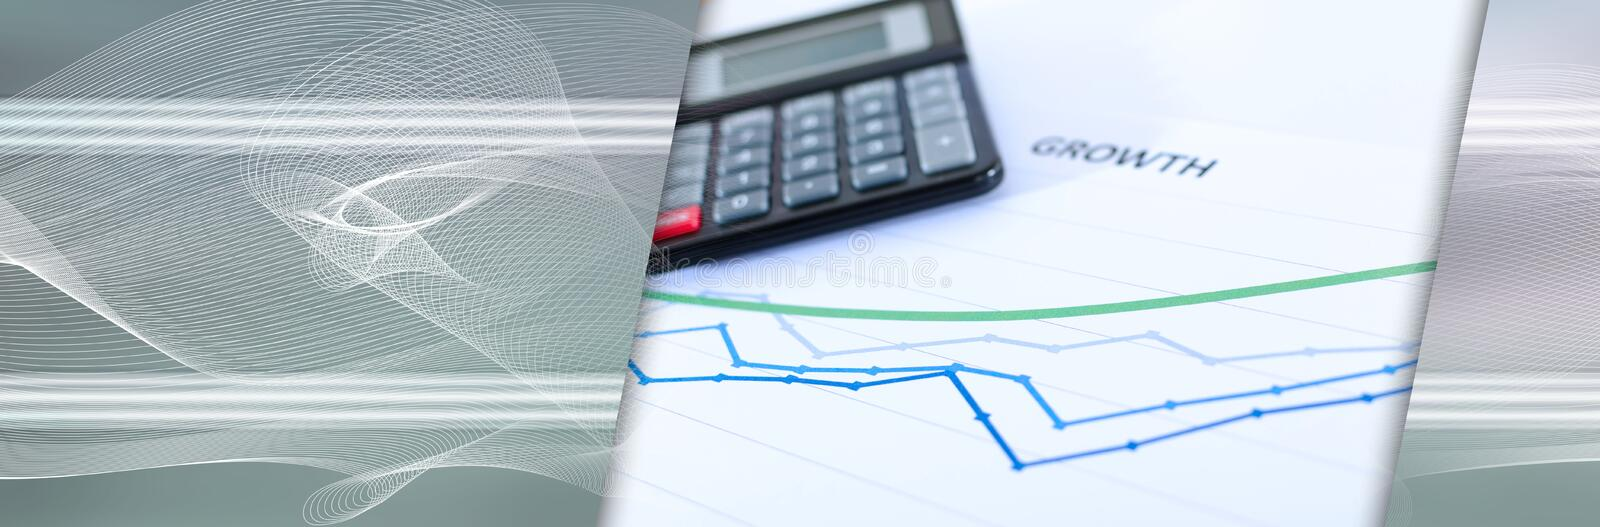 Financial graphs showing growth with calculator. panoramic banner. Financial graphs showing growth with calculator closeup. panoramic banner stock photography